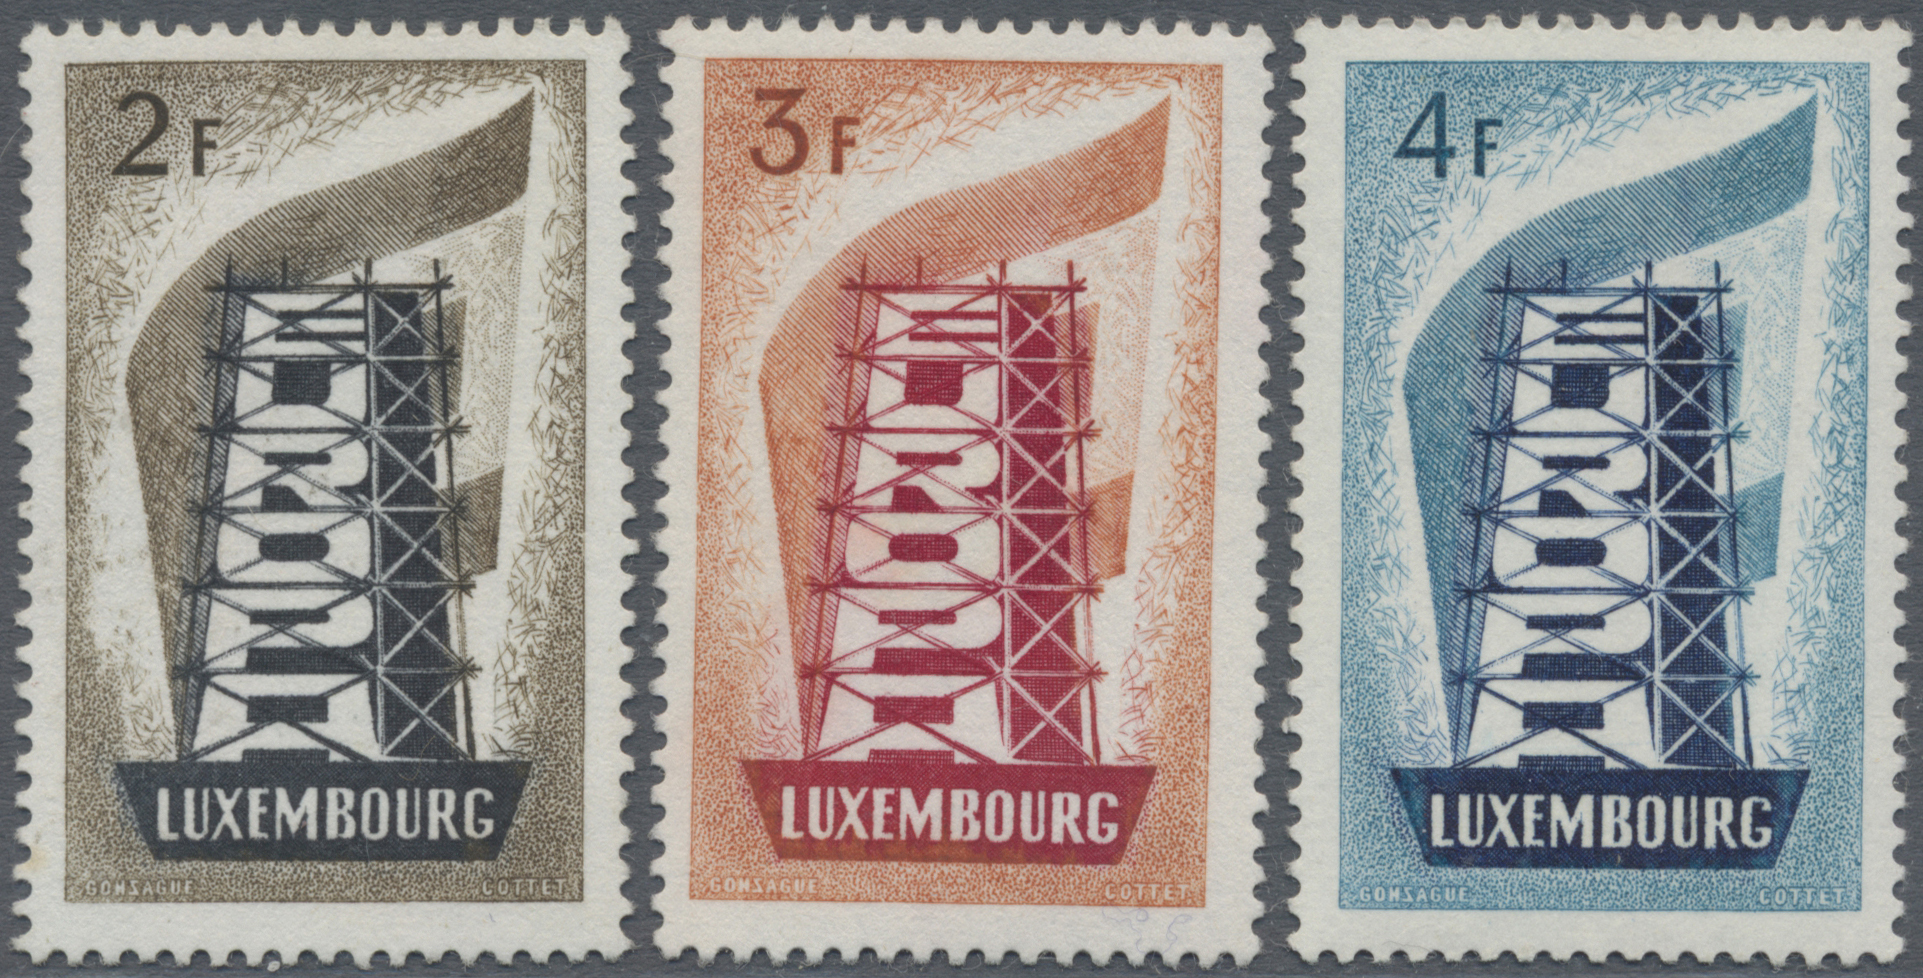 Lot 22258 - luxemburg  -  Auktionshaus Christoph Gärtner GmbH & Co. KG Sale #47 Collections: Overseas, Thematics, Europe